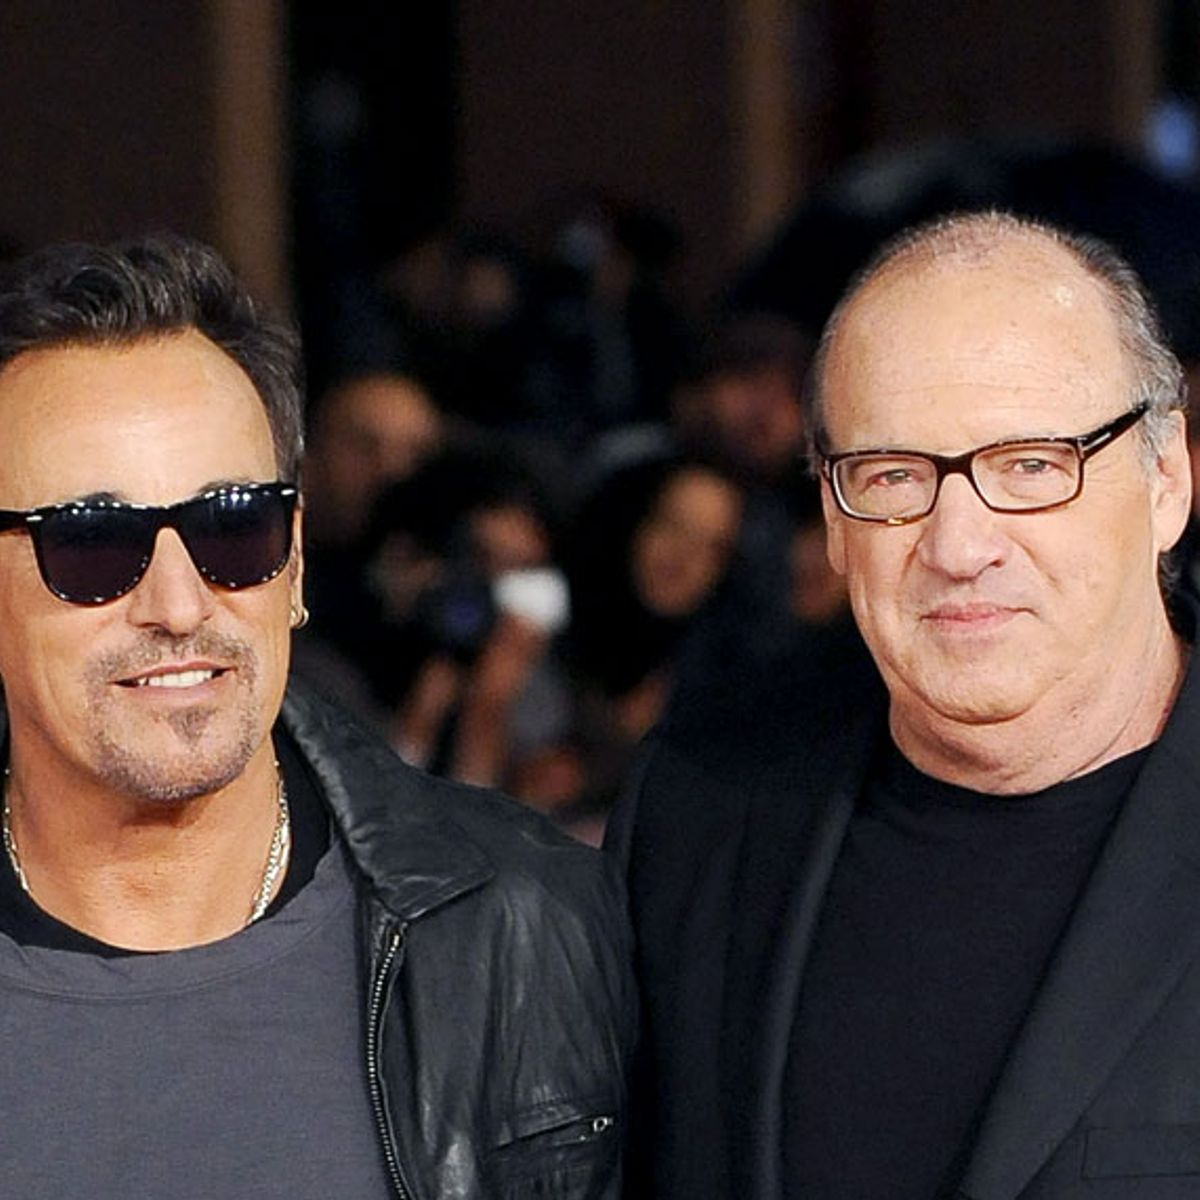 Jon Landau saw the future of rock 'n' roll, and helped bring Springsteen's best work to life